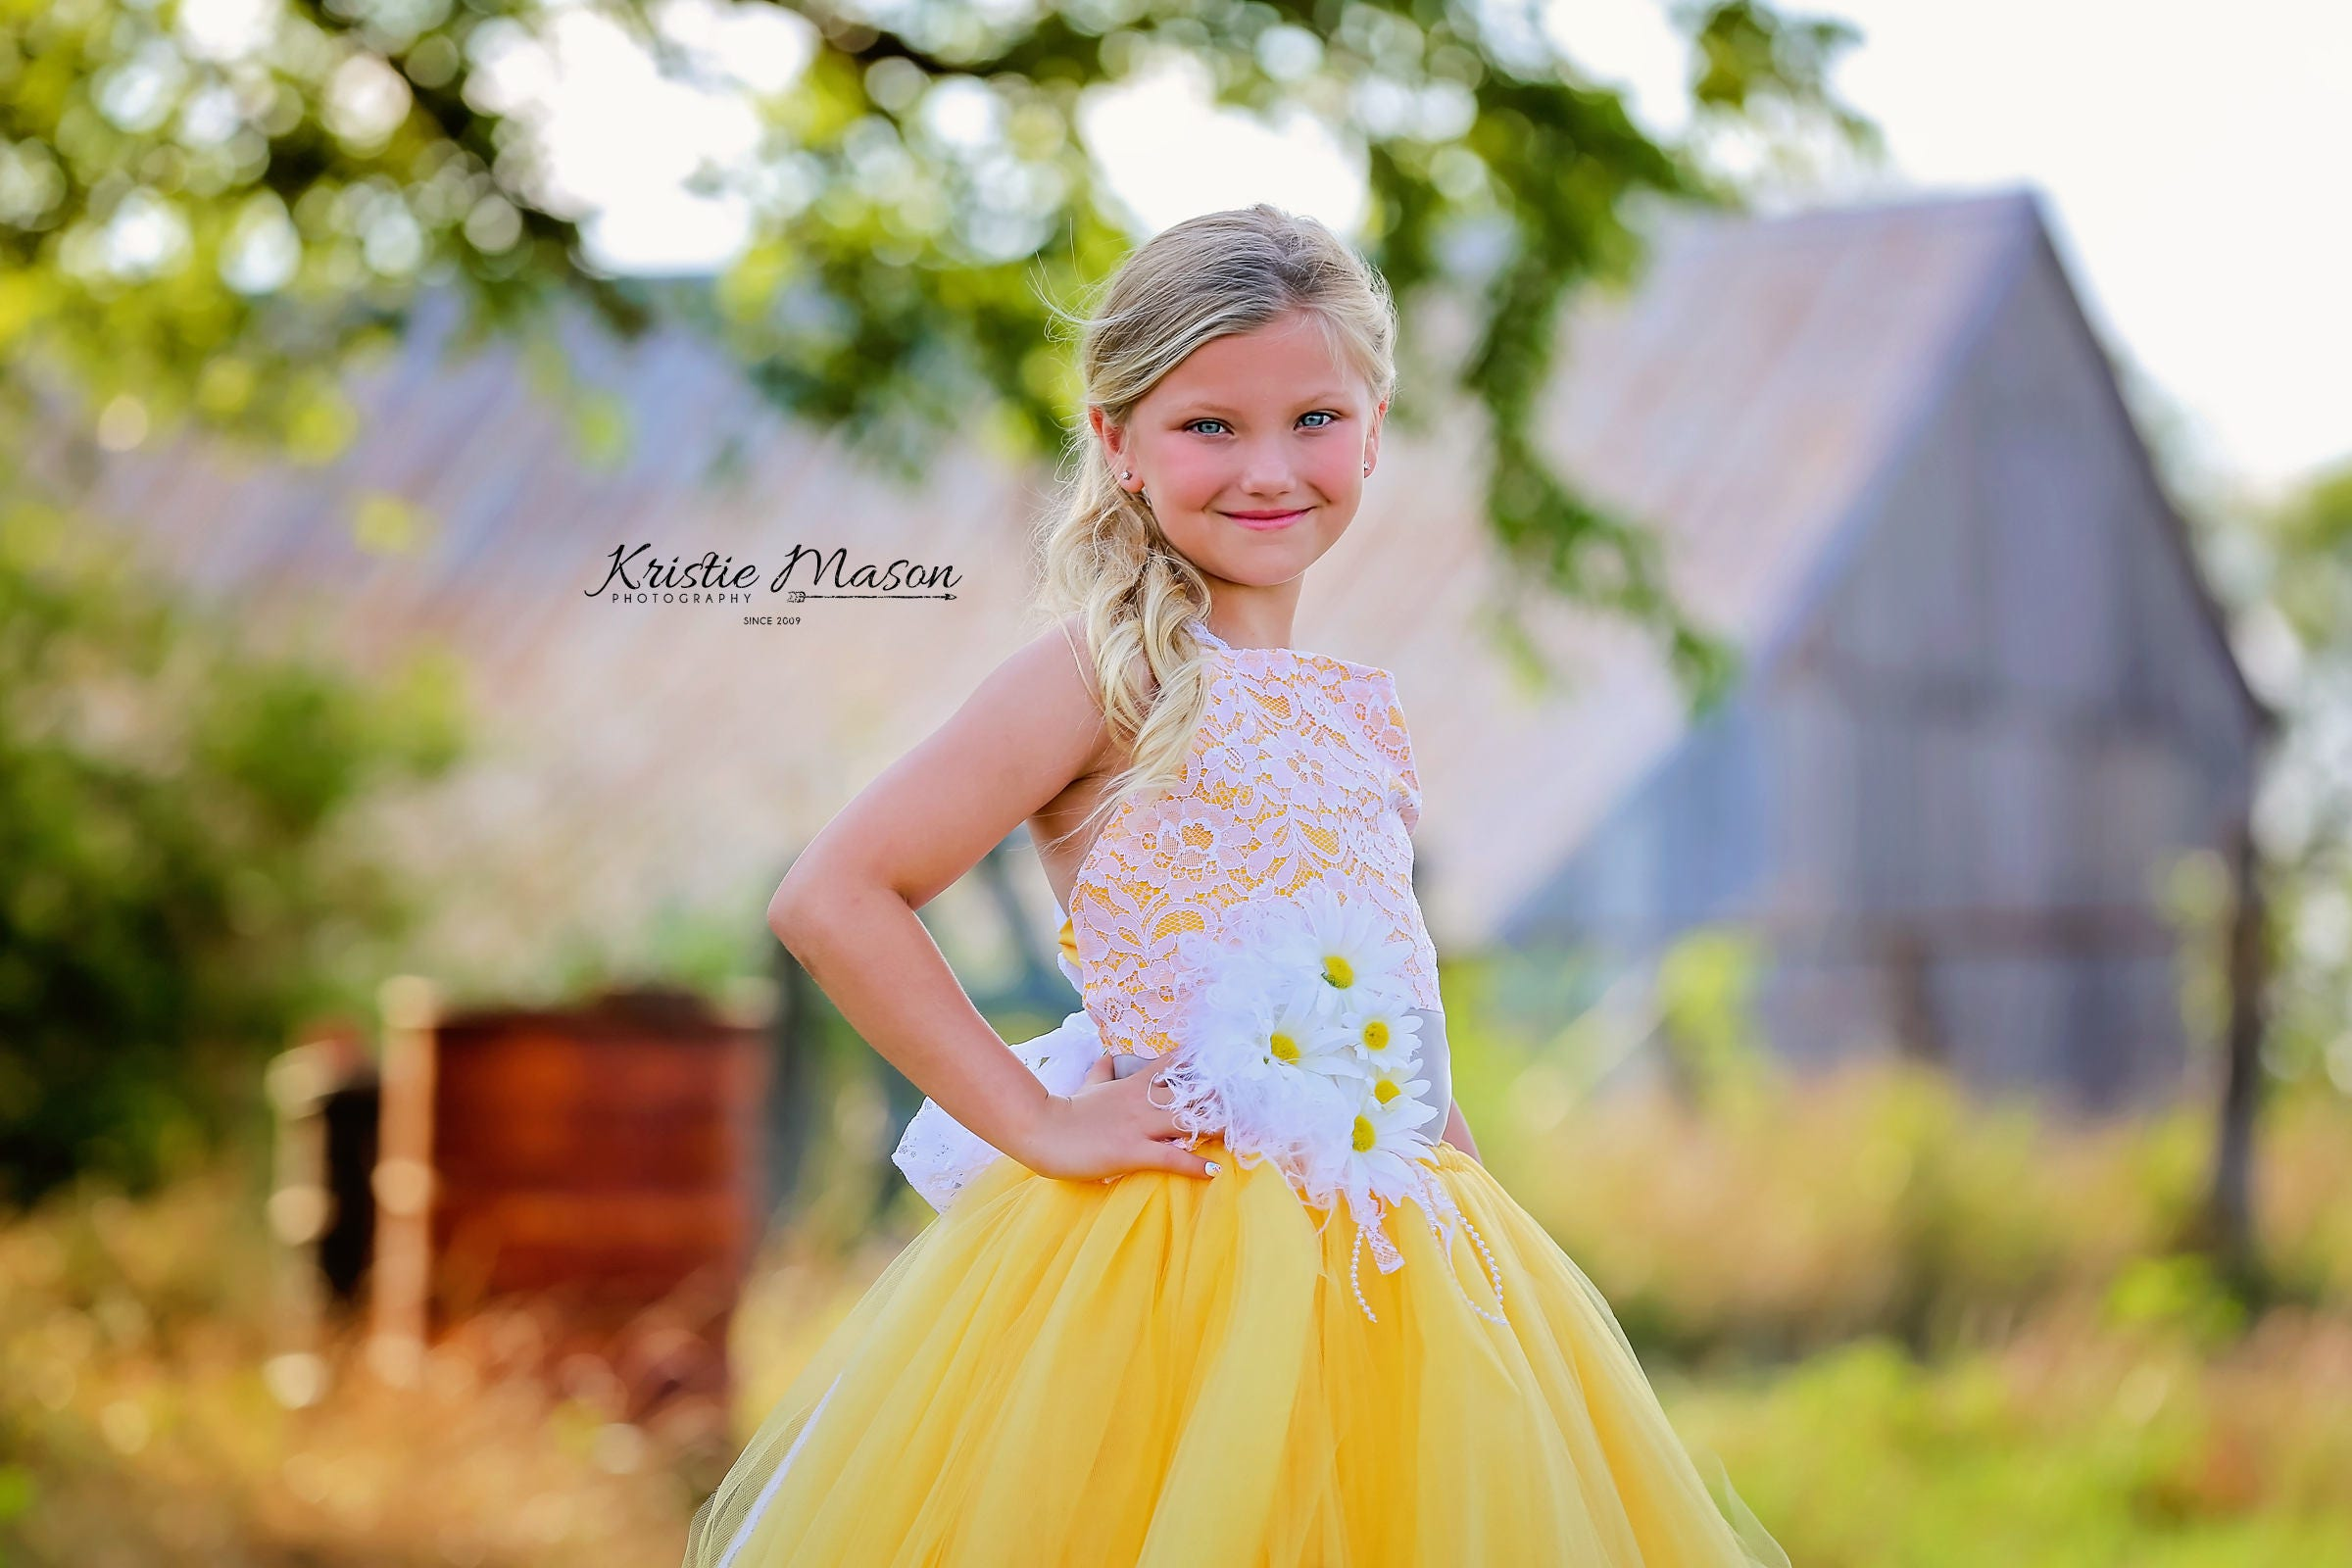 Daisy Dress Yellow Dress Flower Girl Dress Lace Dress Tulle Dress